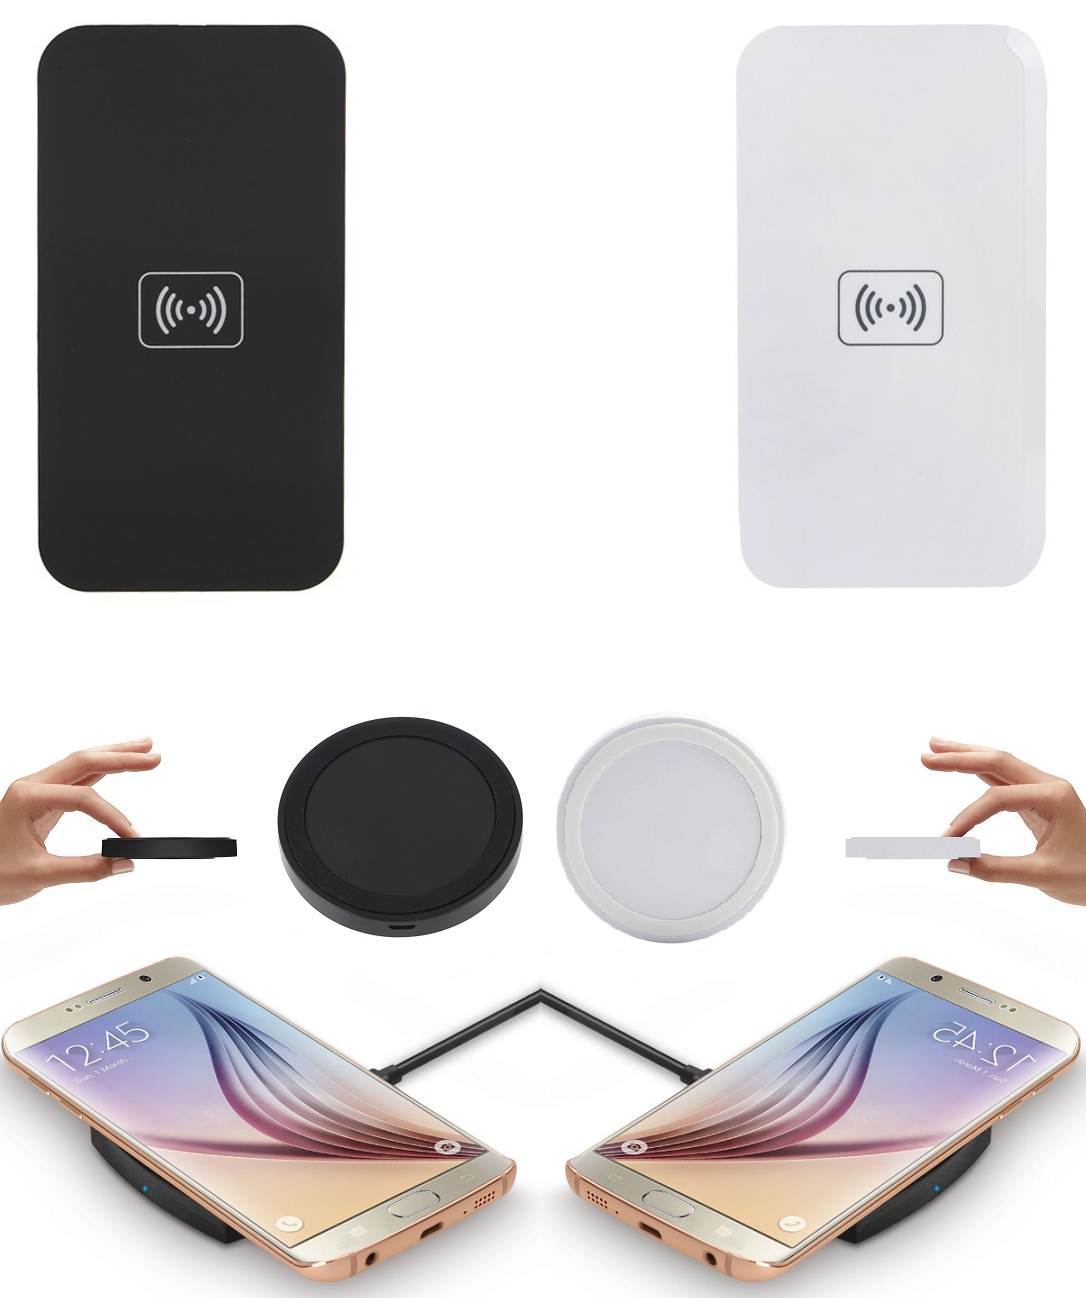 induktive ladestation ladeger t dockingstation kabellos wireless charger pad neu ebay. Black Bedroom Furniture Sets. Home Design Ideas